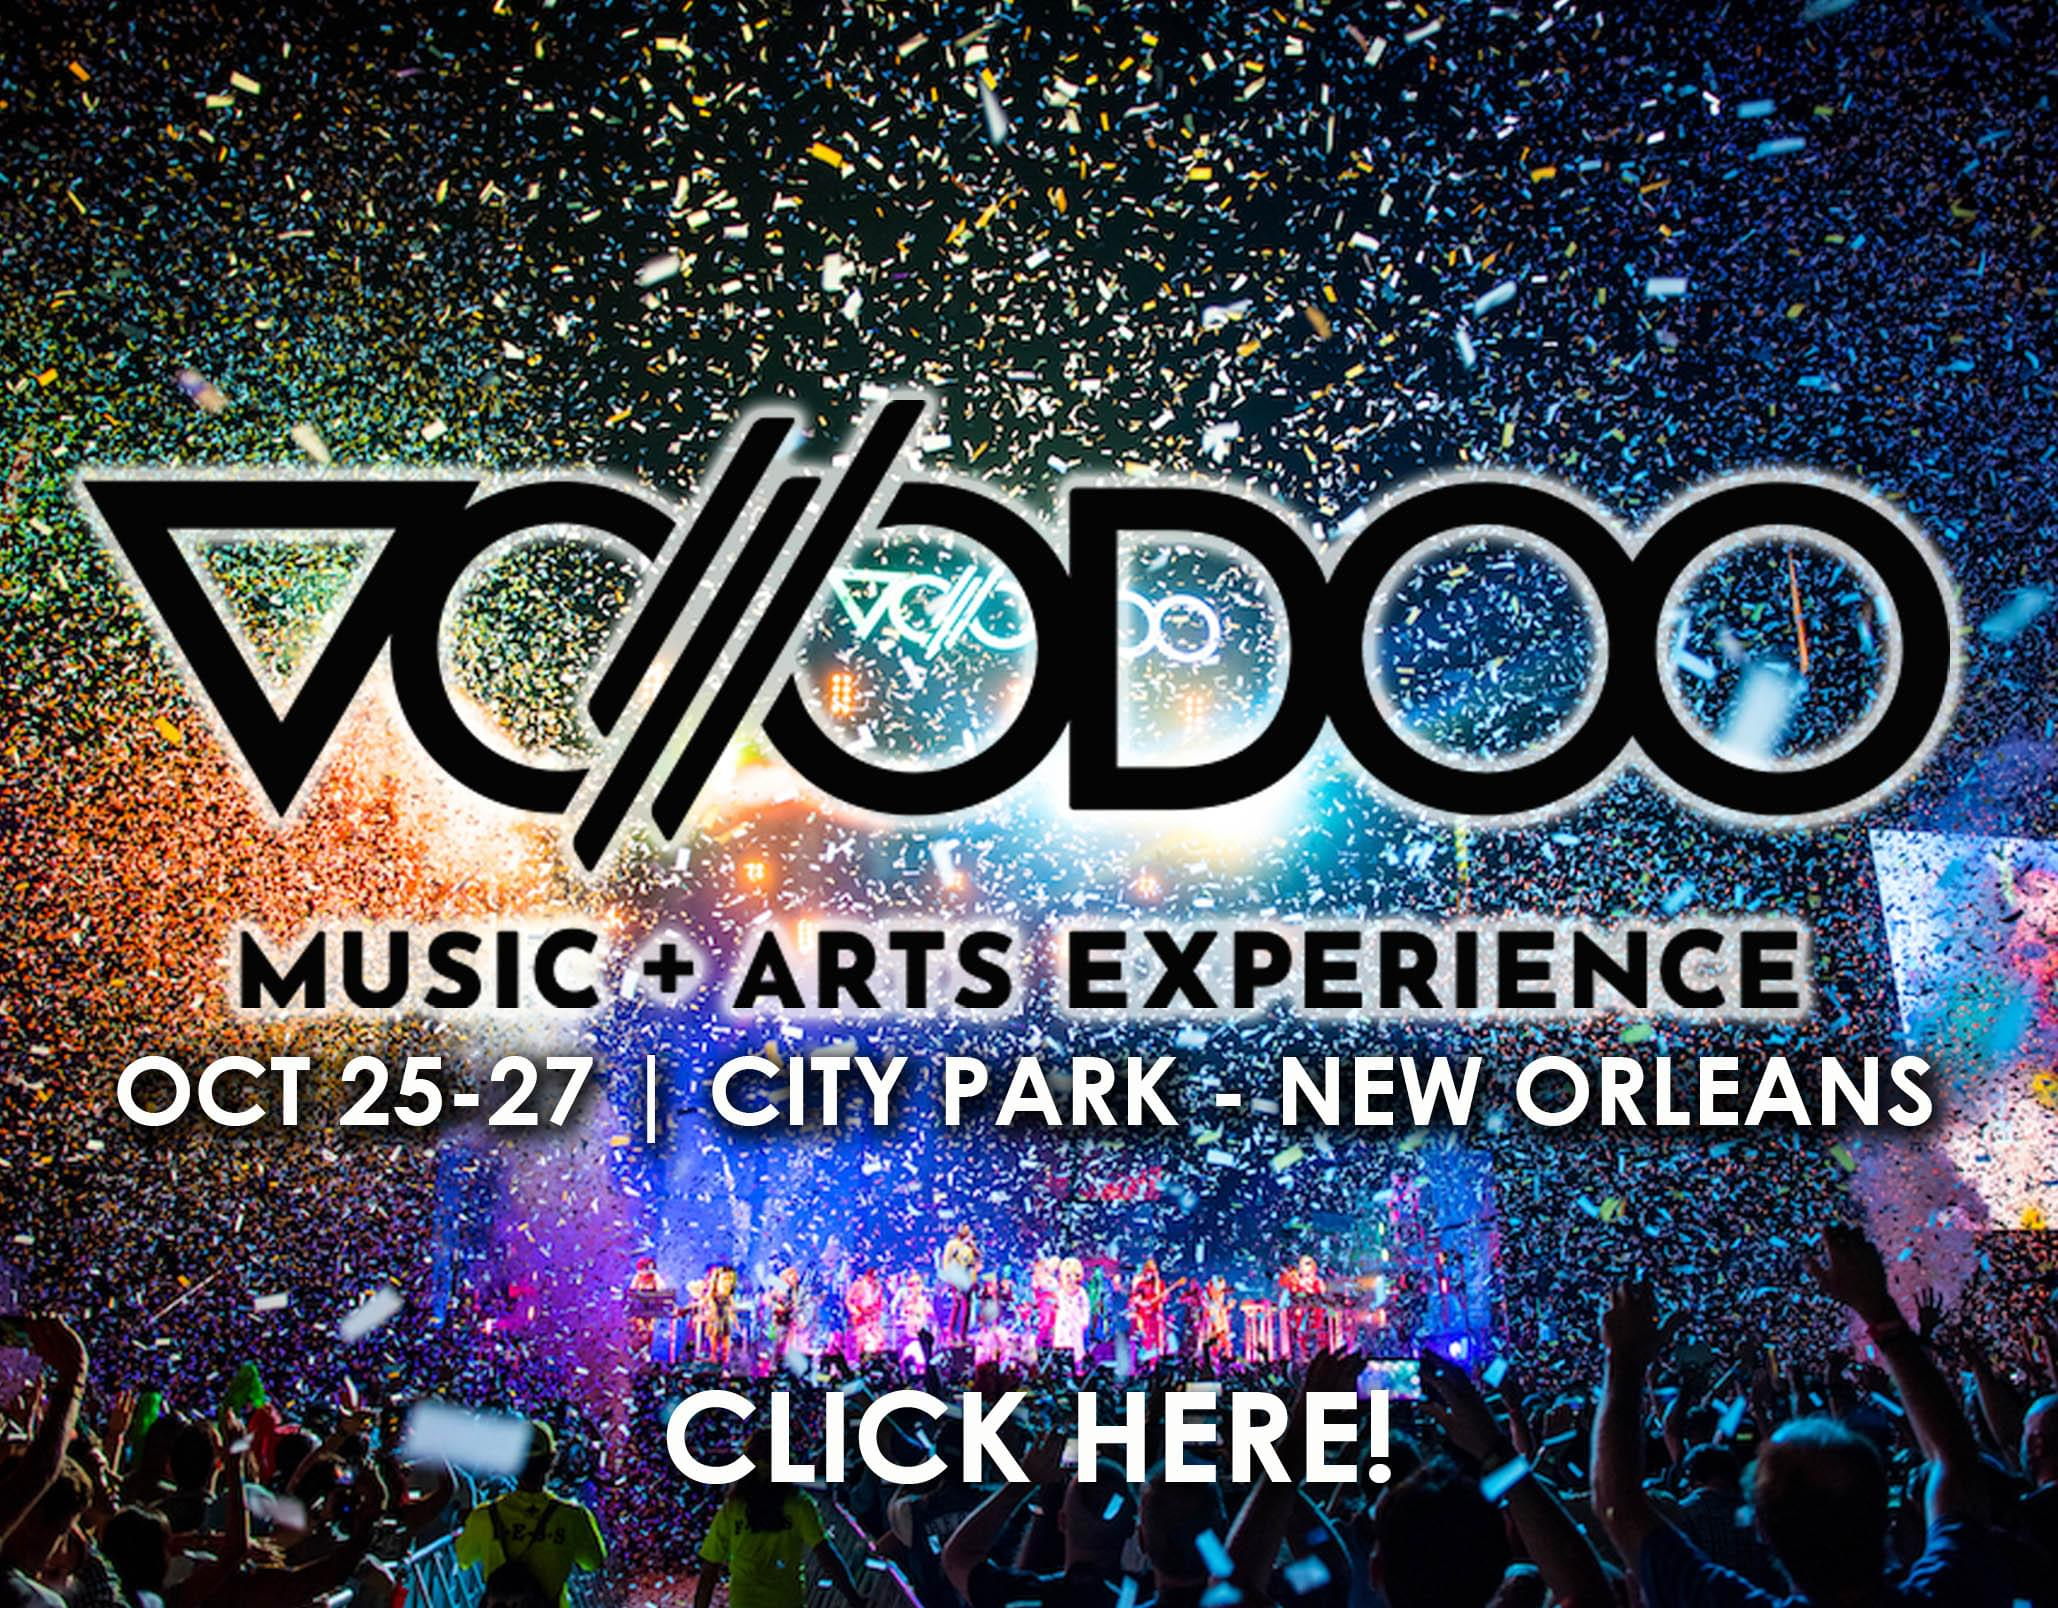 Win Voodoo Music + Arts Experience Passes